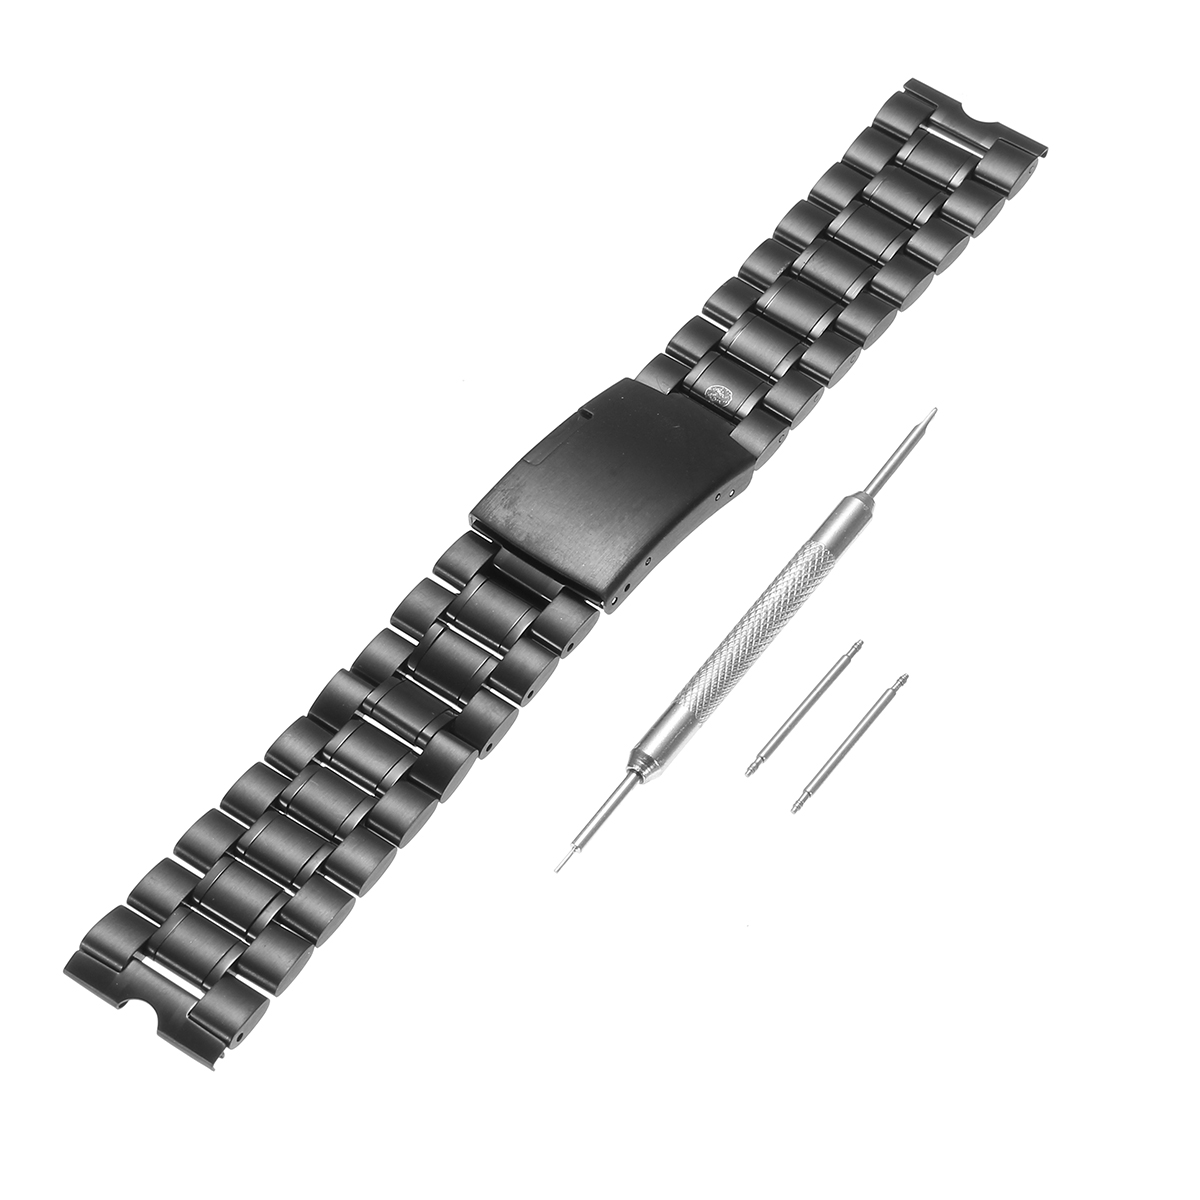 22mm Black Stainless Steel Metal Watch Band Strap for Moto 360 1st Watch+ Tools